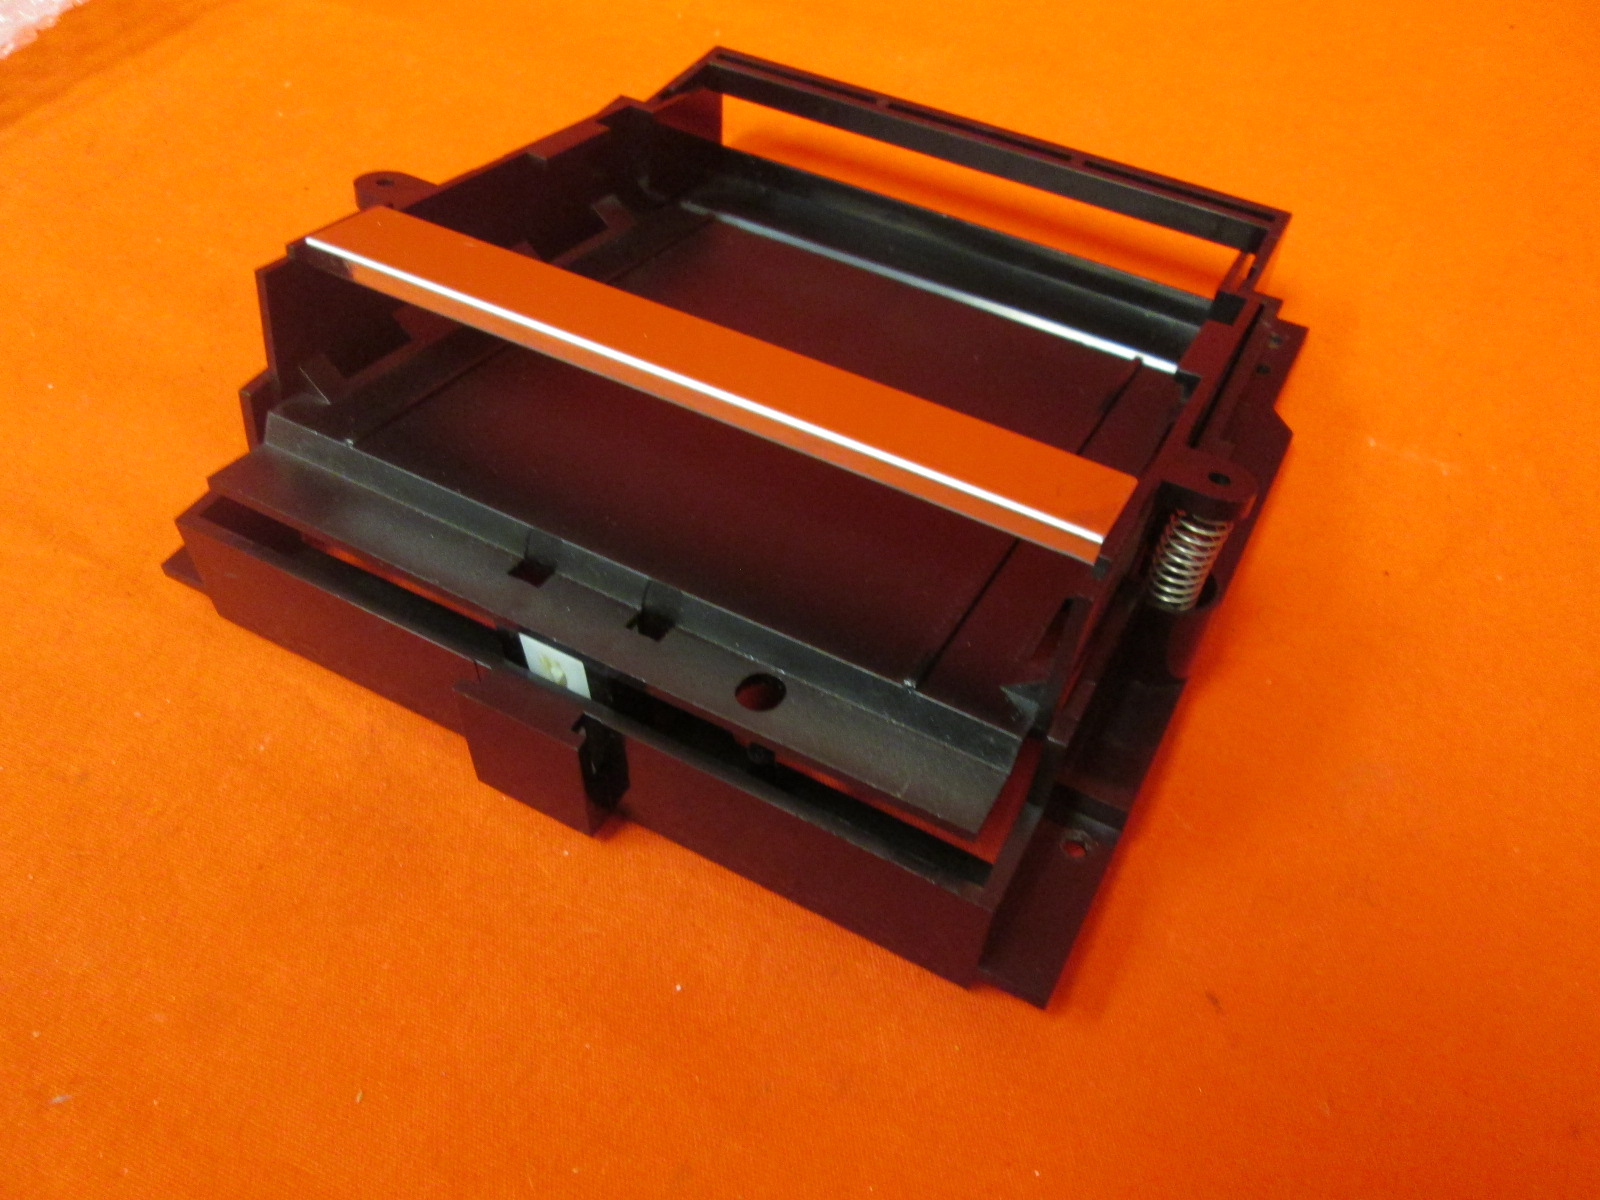 Original Replacement Spring Cartridge Tray For Nintendo NES Console